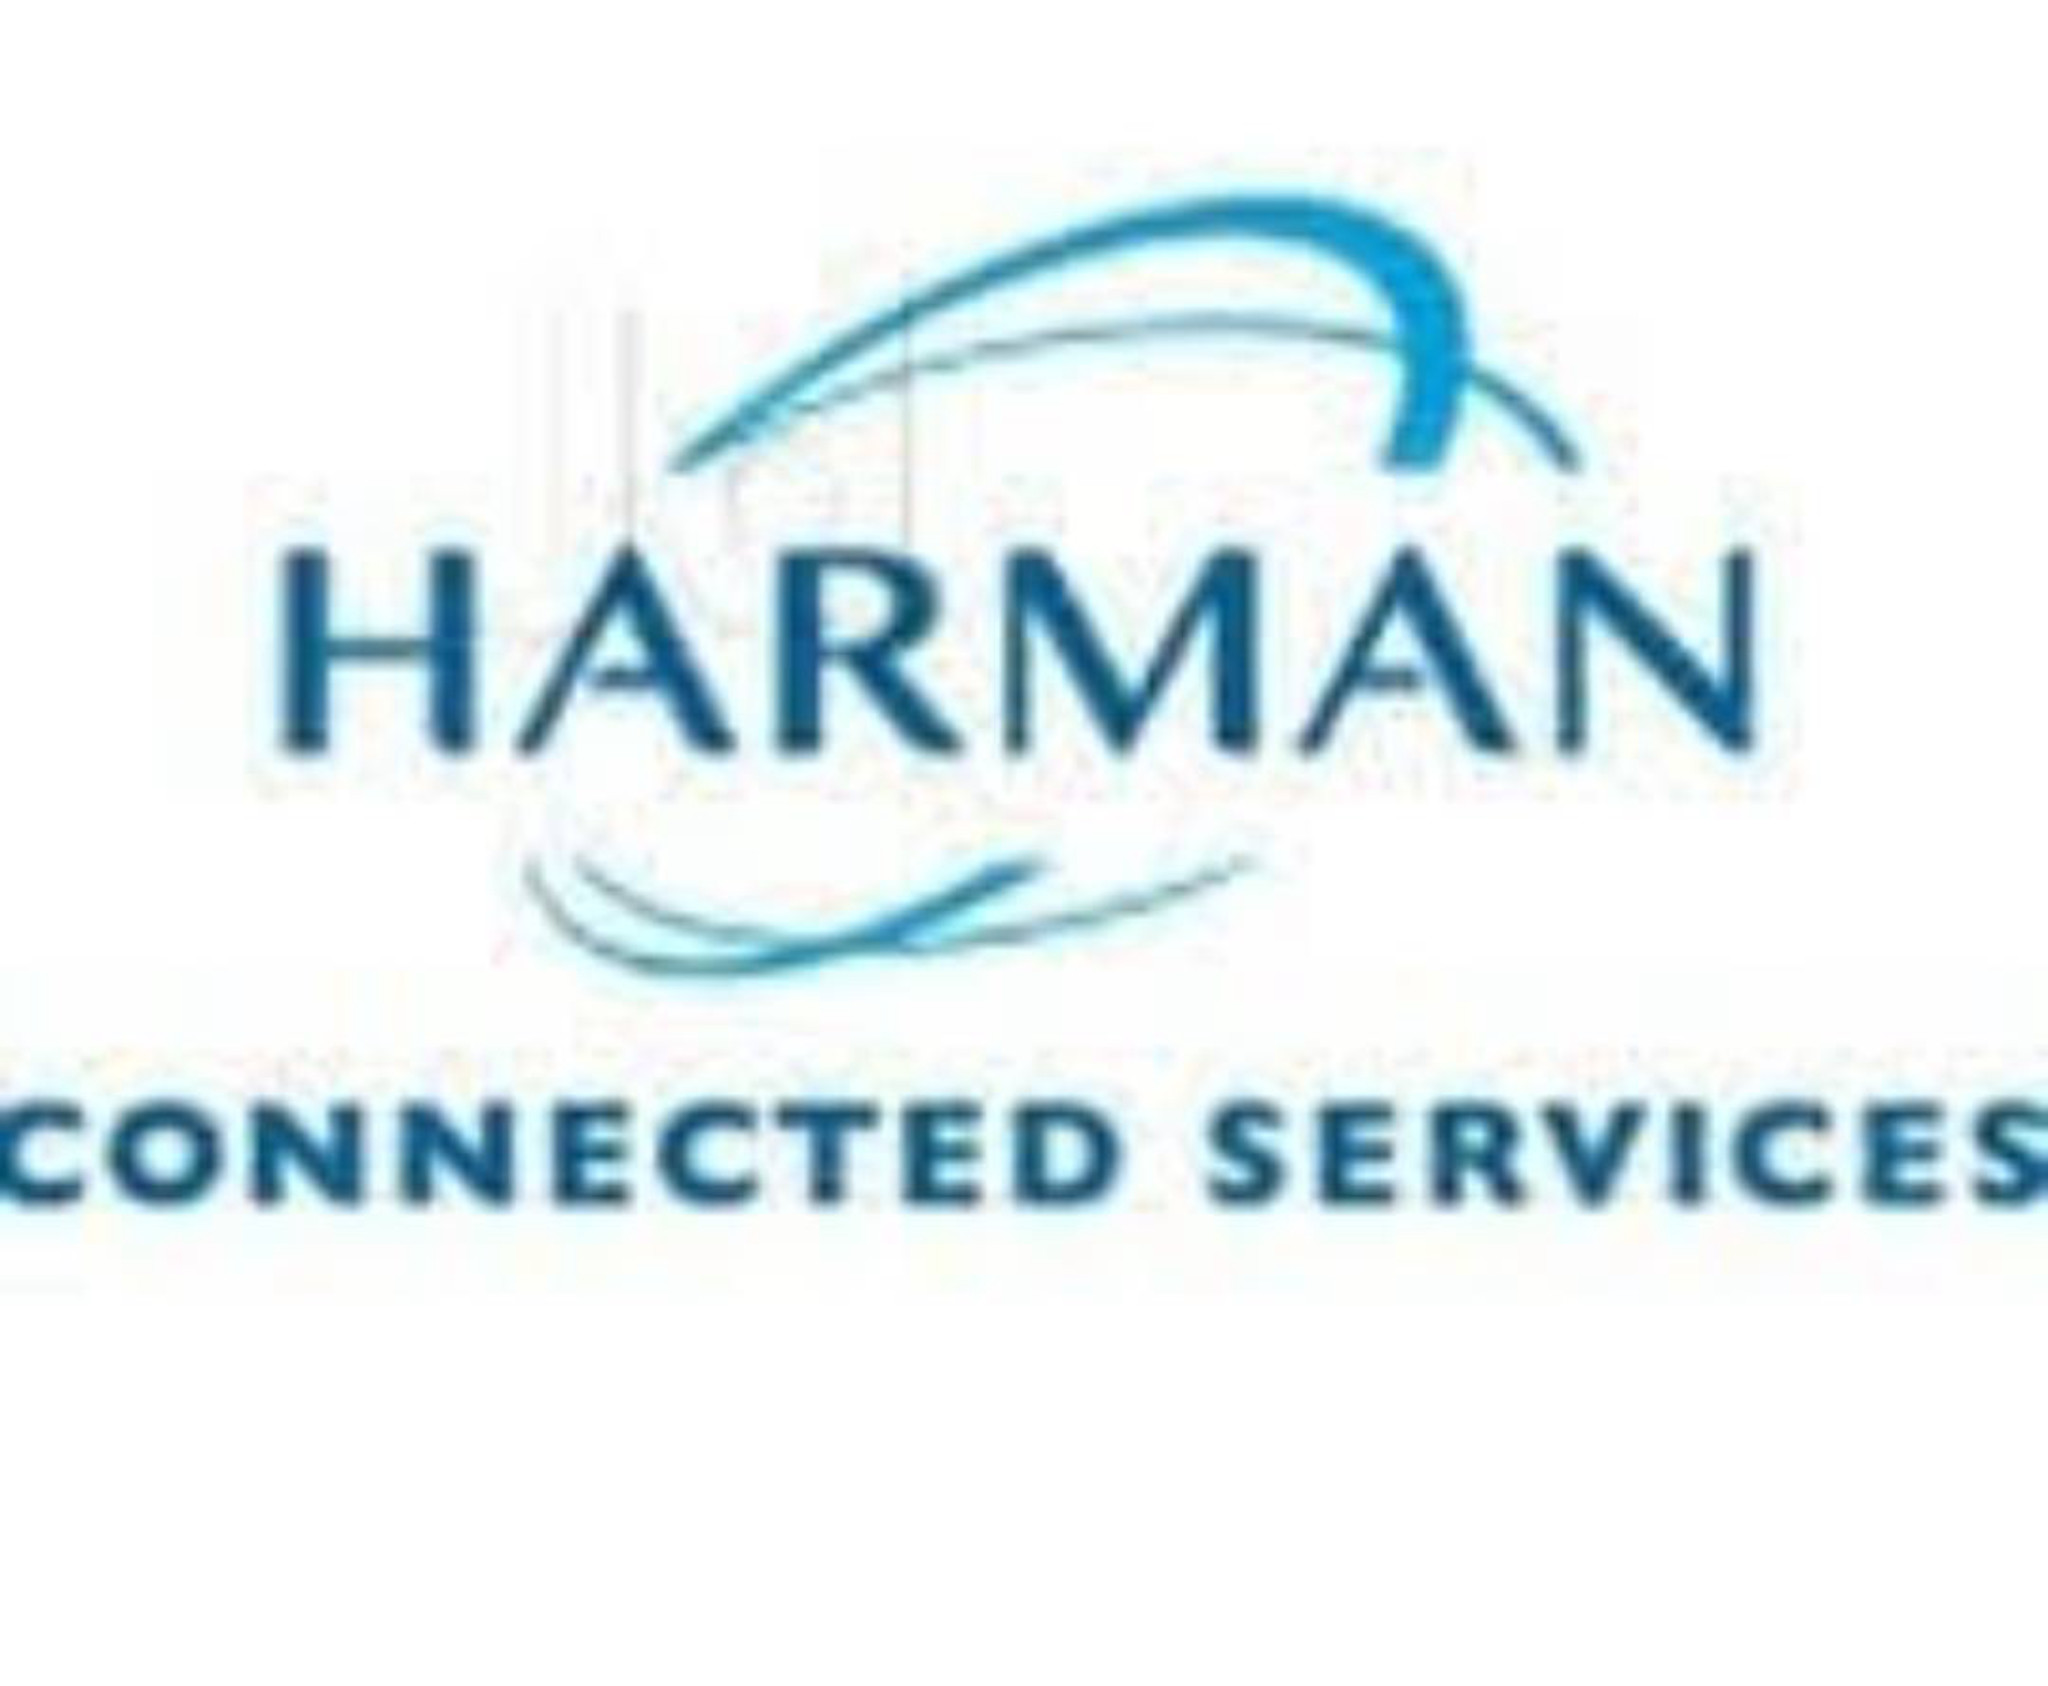 Harman Connected Services bowl icon